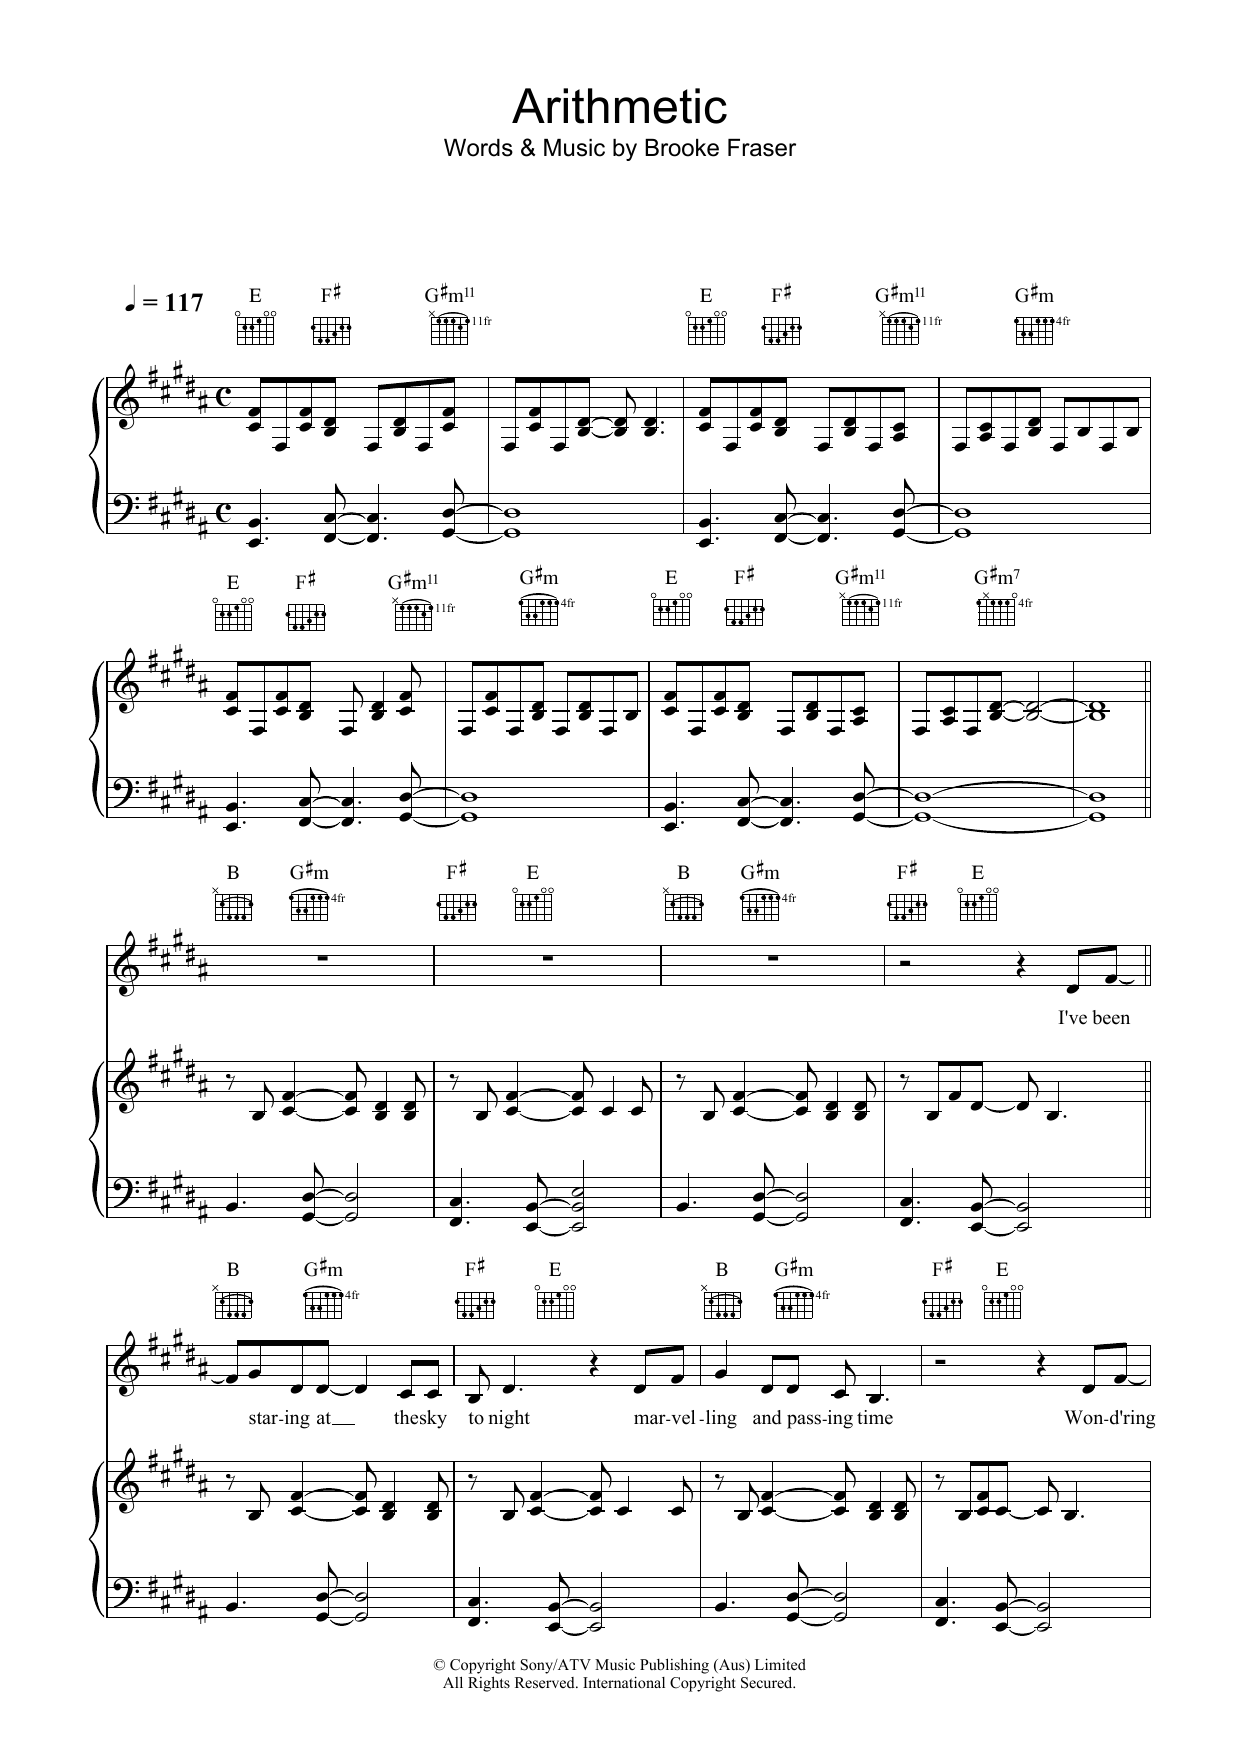 Brooke Fraser Arithmetic sheet music preview music notes and score for Piano, Vocal & Guitar including 7 page(s)